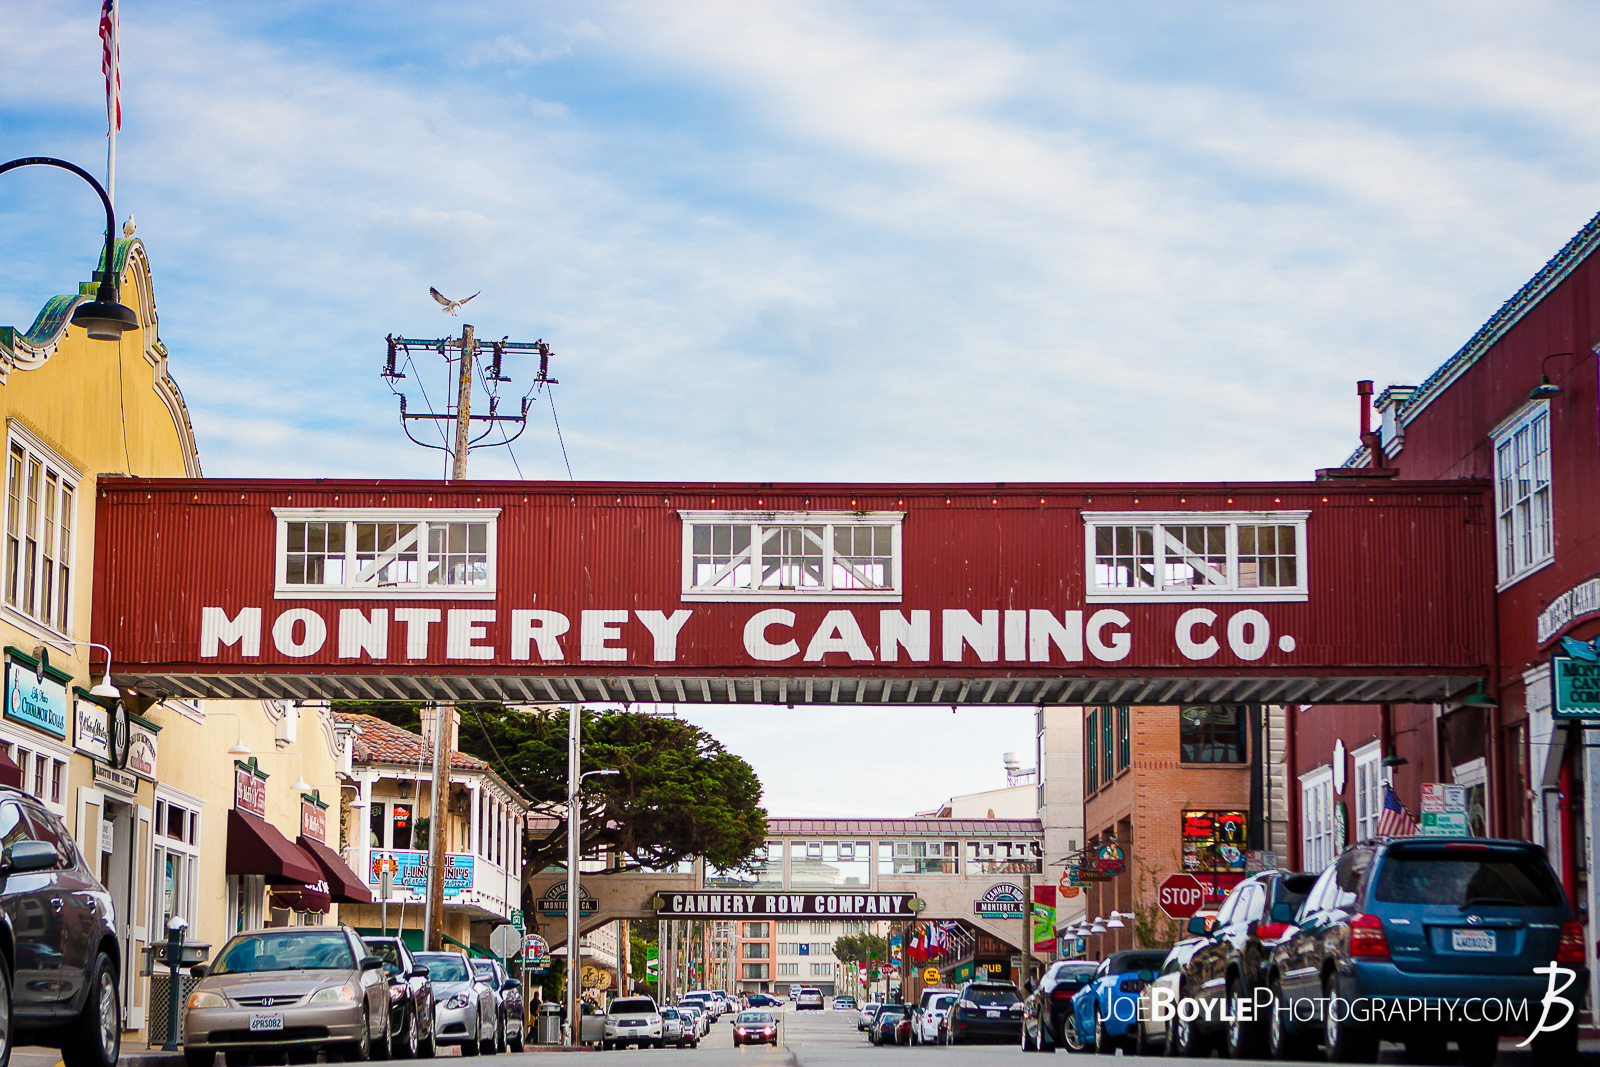 I was so excited to visit Cannery Row on my visit to Monterey California! I had recently finished reading East of Eden by John Steinbeck and was eager to visit places where he grew up and had inspiration for his other books! I love the history, the look and feel of the place and of course the ocean! Monterey is such a beautiful place - I'm so thankful to have been able to visit!